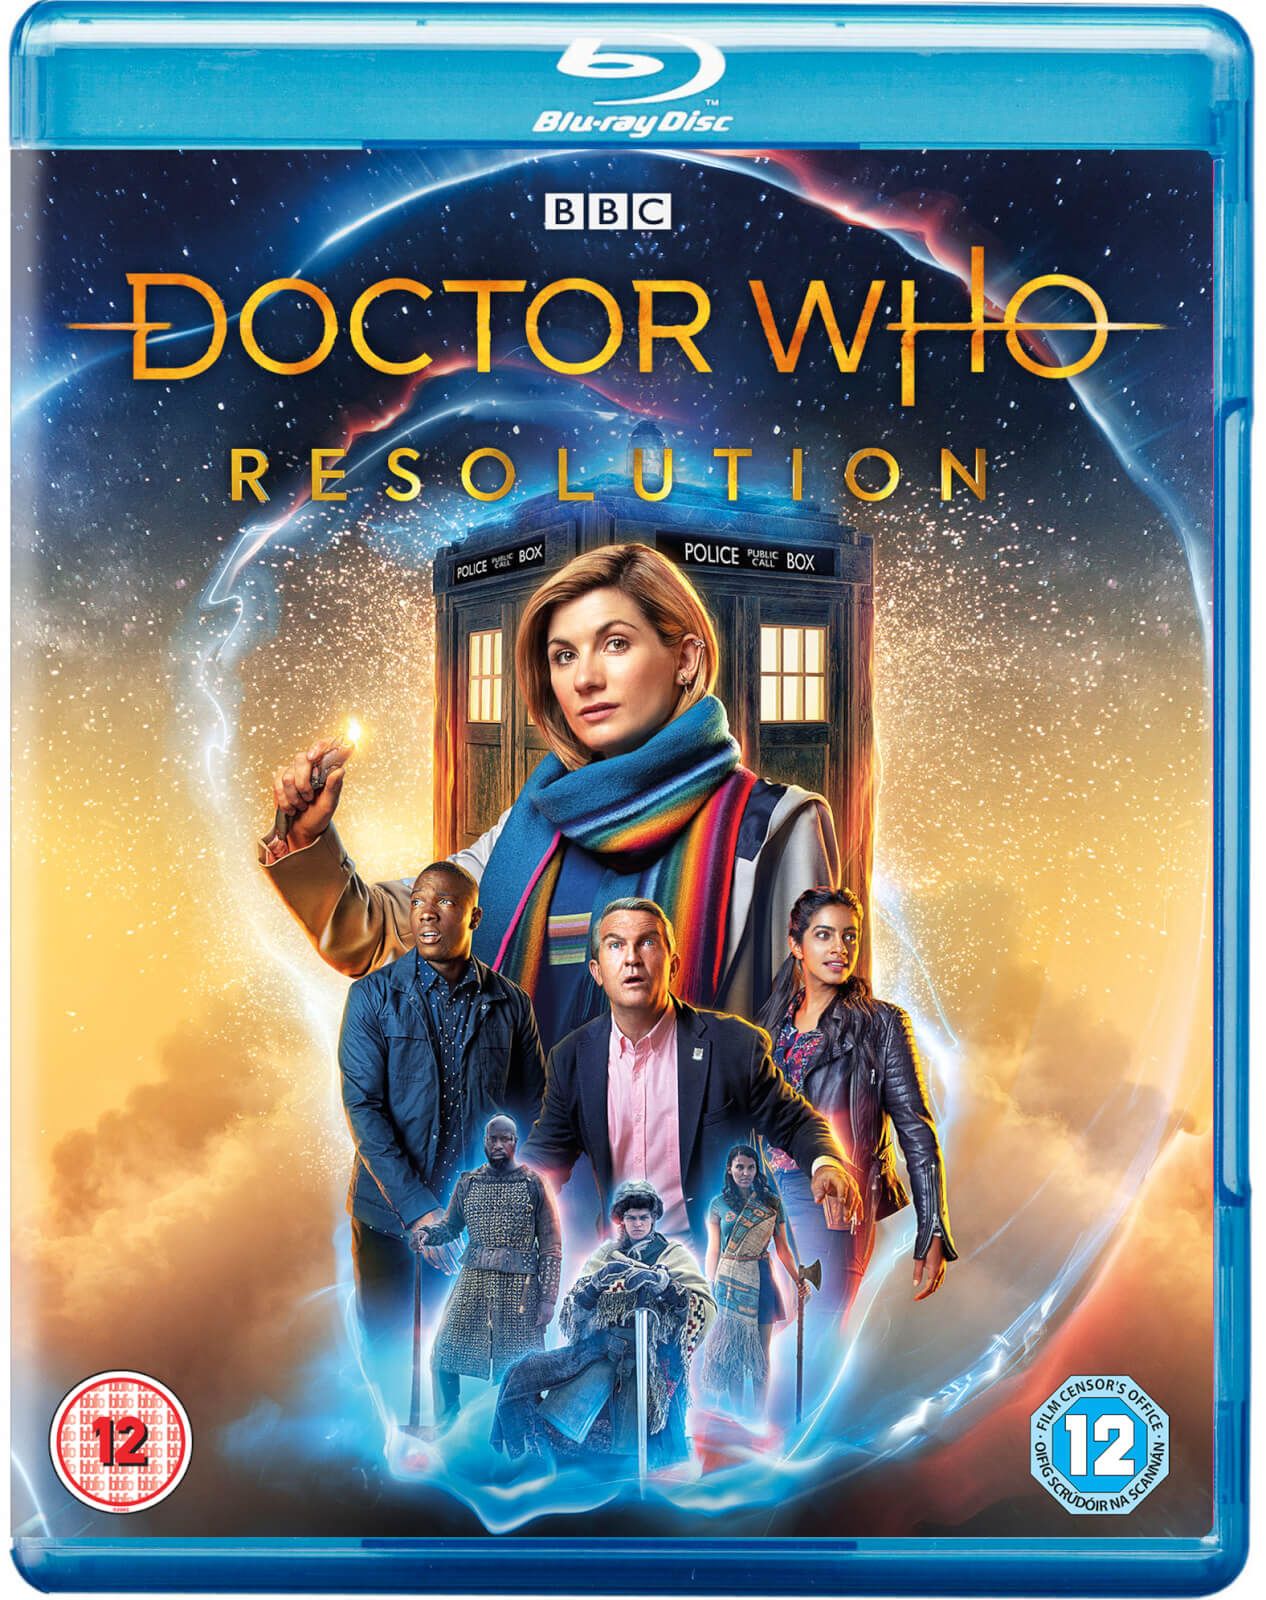 Doctor Who Christmas Special 2019.Doctor Who Resolution 2019 Special